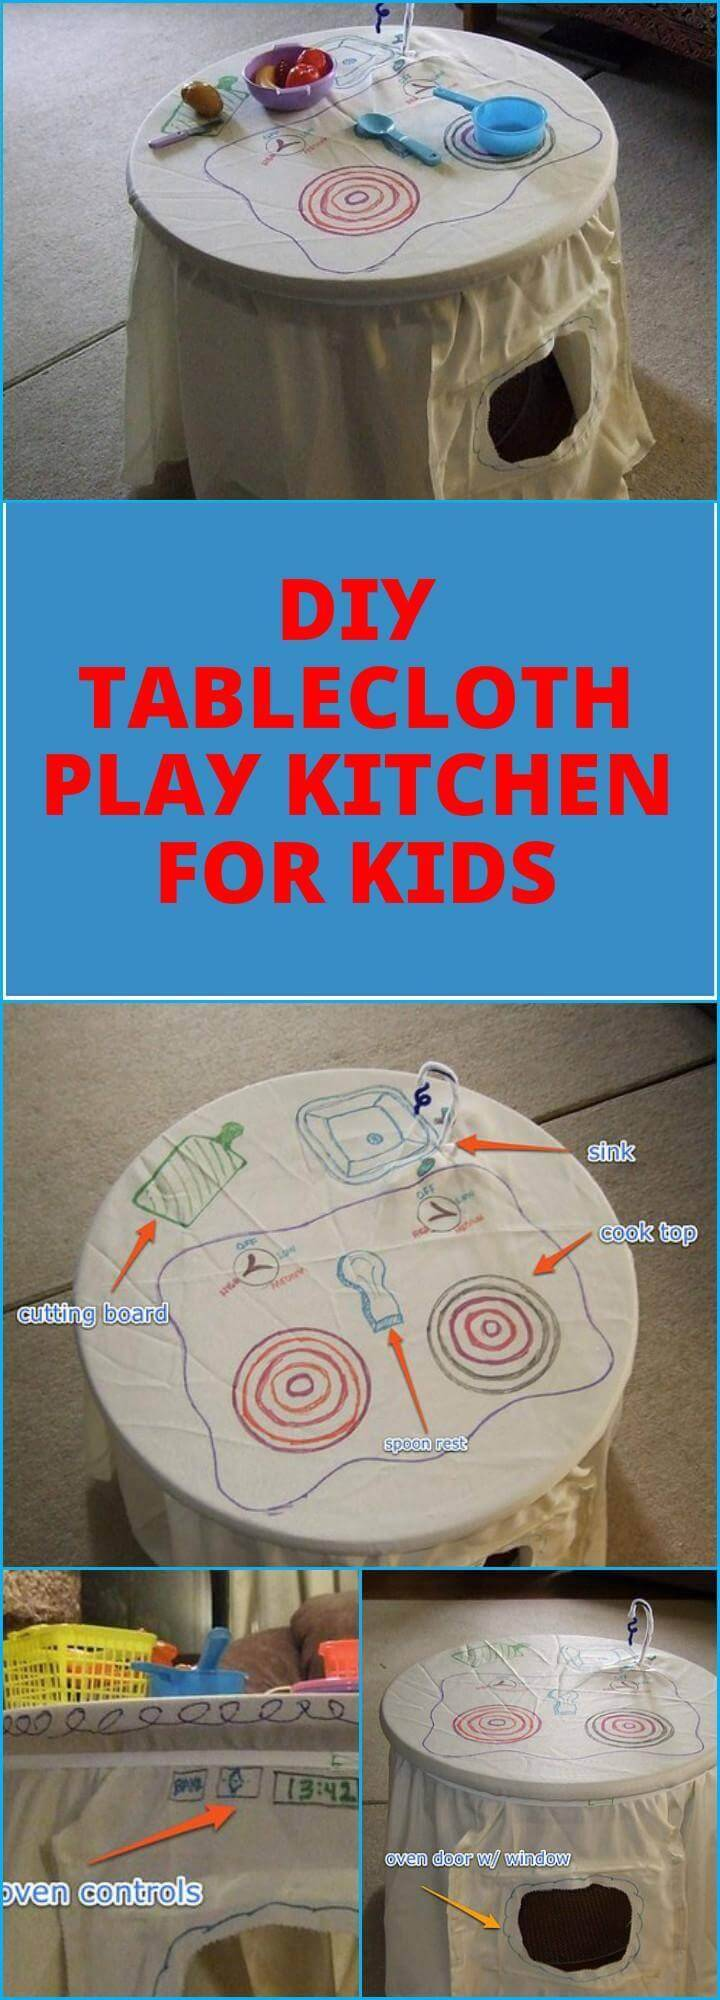 DIY easy tablecloth play kitchen